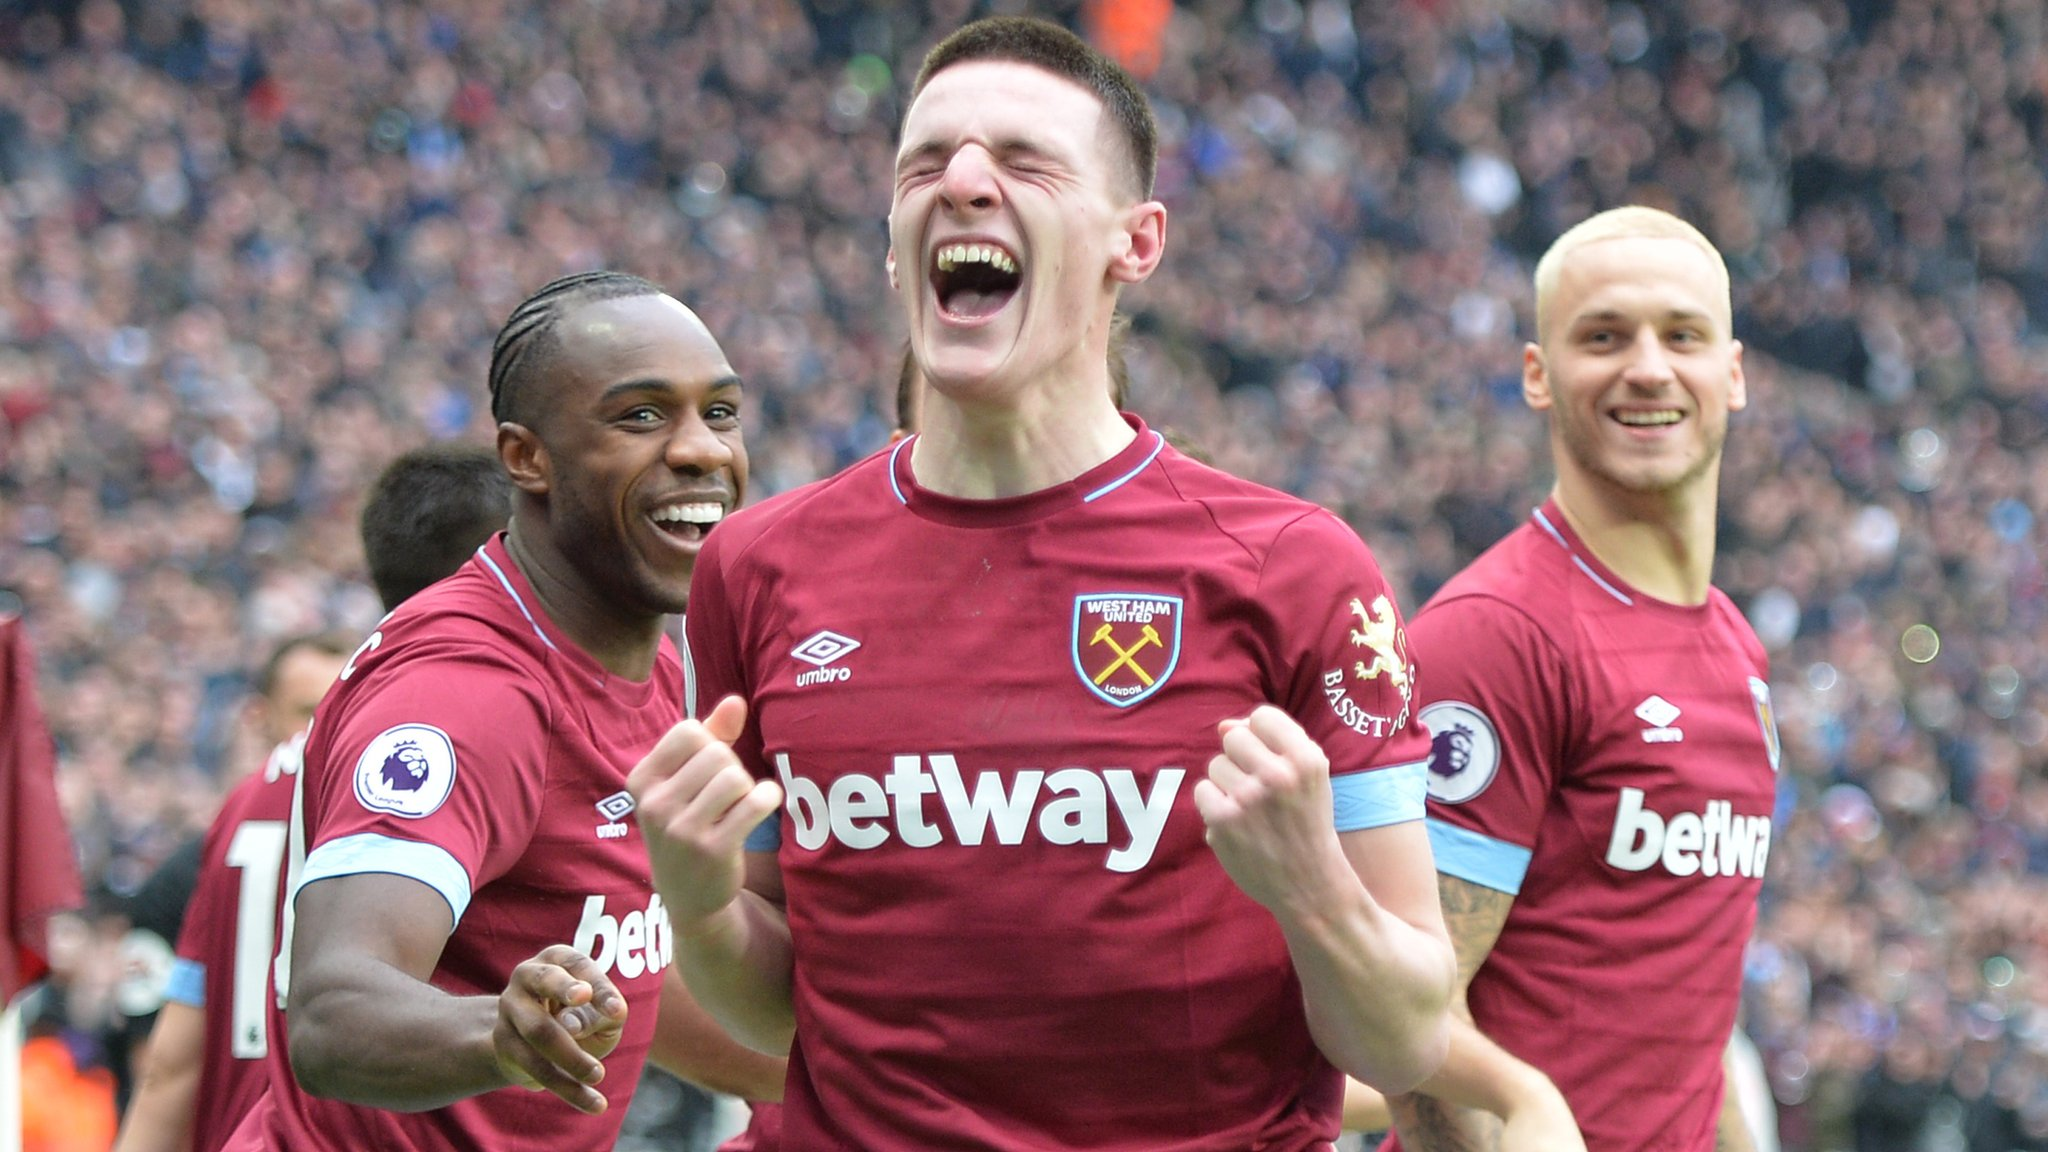 Declan Rice: West Ham boss Manuel Pellegrini praises 'complete player'